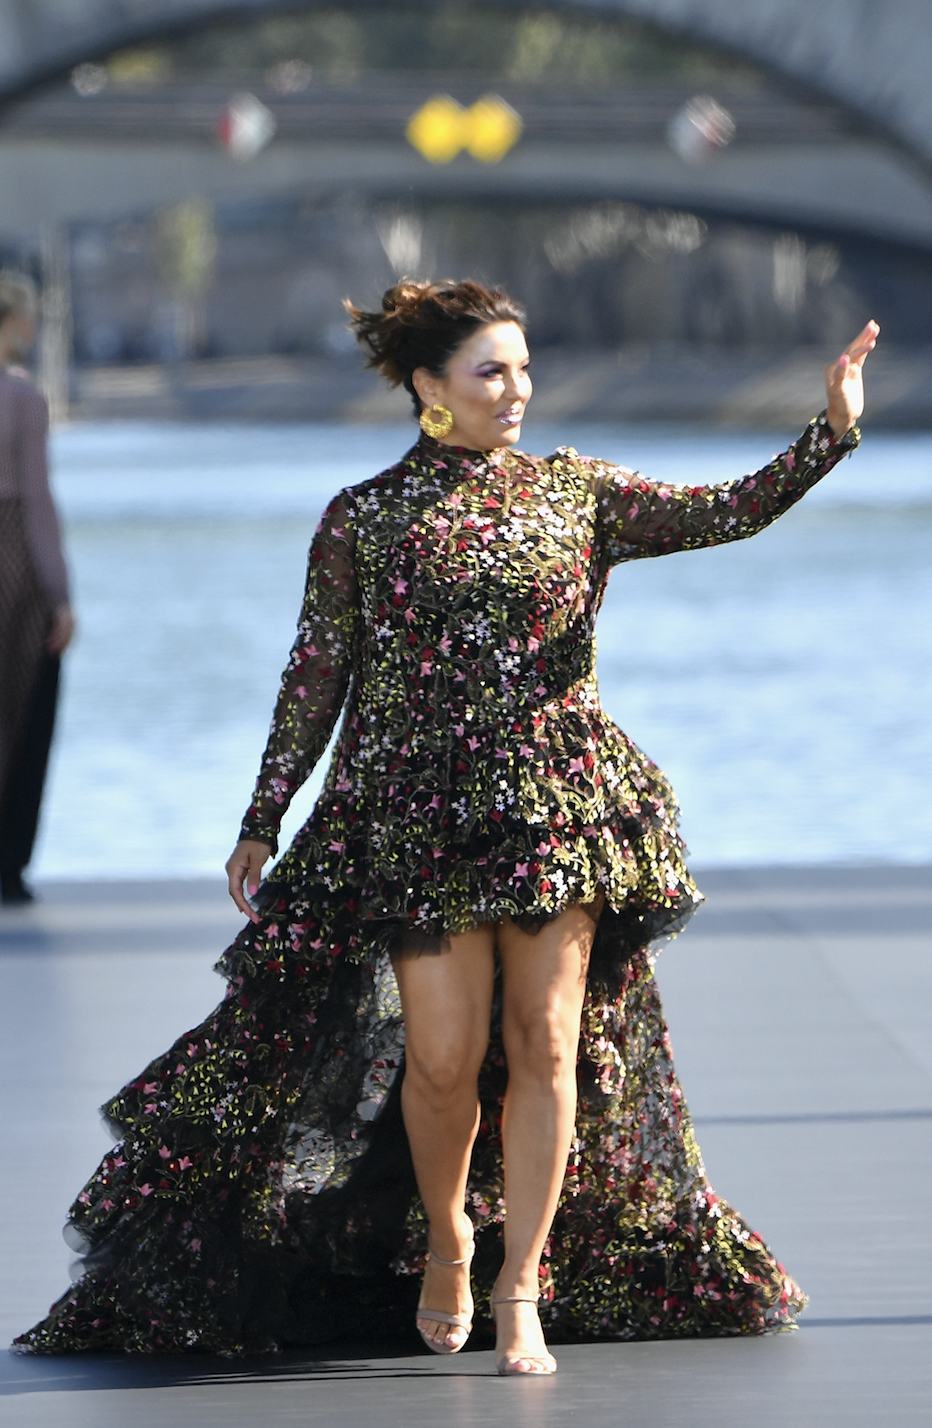 Eva Longoria on the L'Oreal catwalk at Paris Fashion Week. [Credit: L'Oreal]